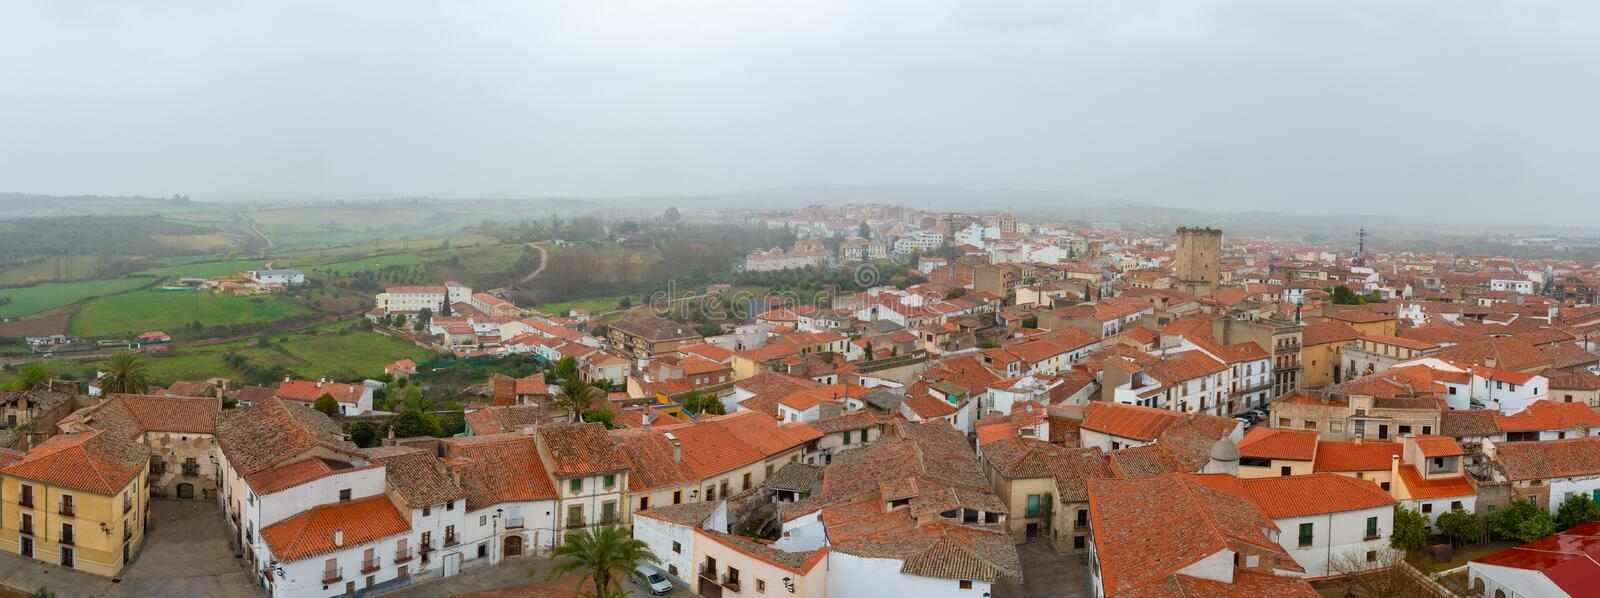 Panoramic view of Coria, in Caceres, Extremadura, Spain.  stock images